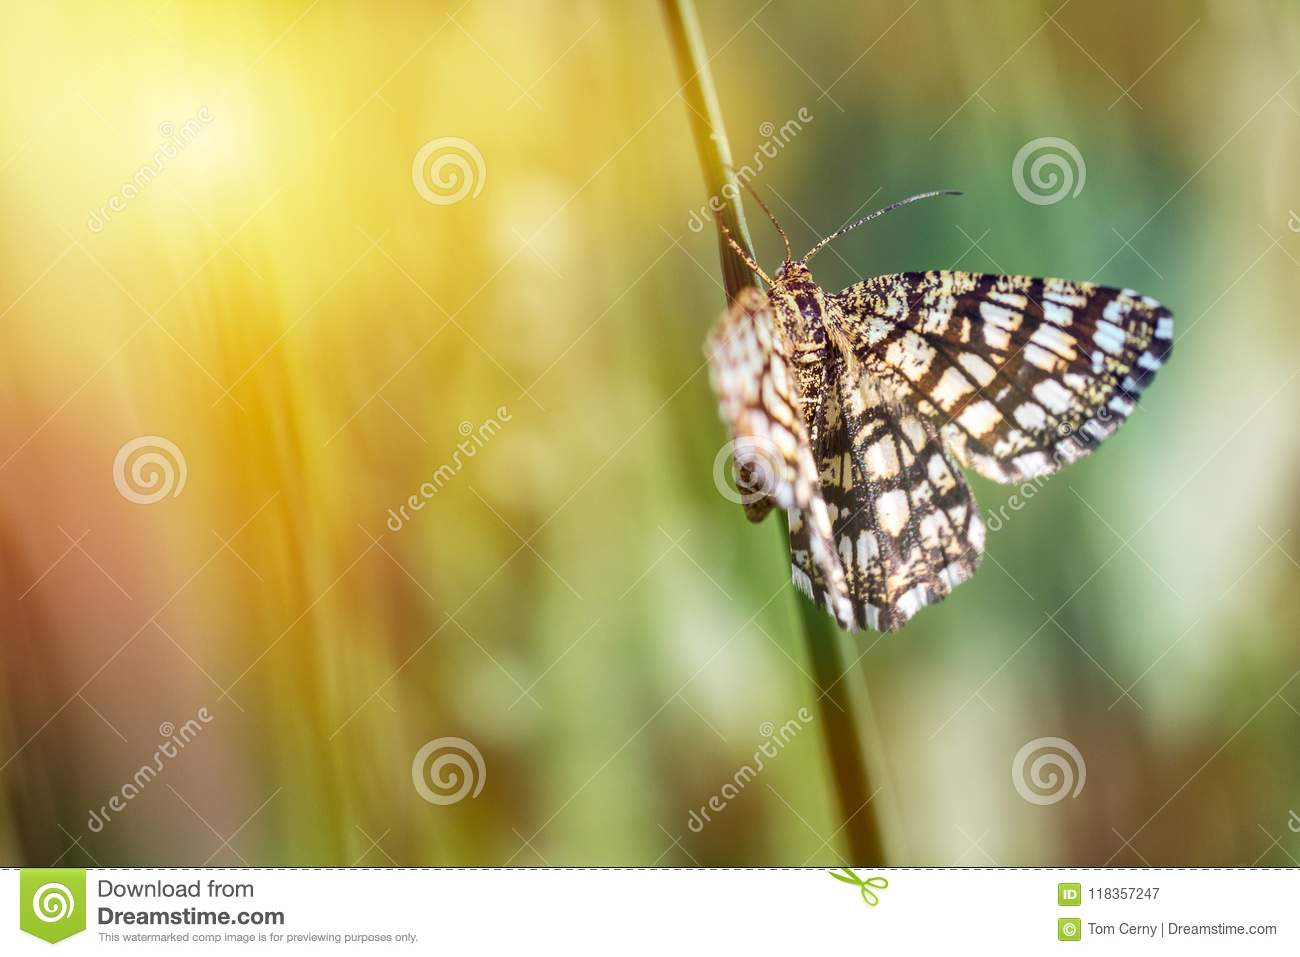 Nice small butterfly sitting on stem of grass, colored photo